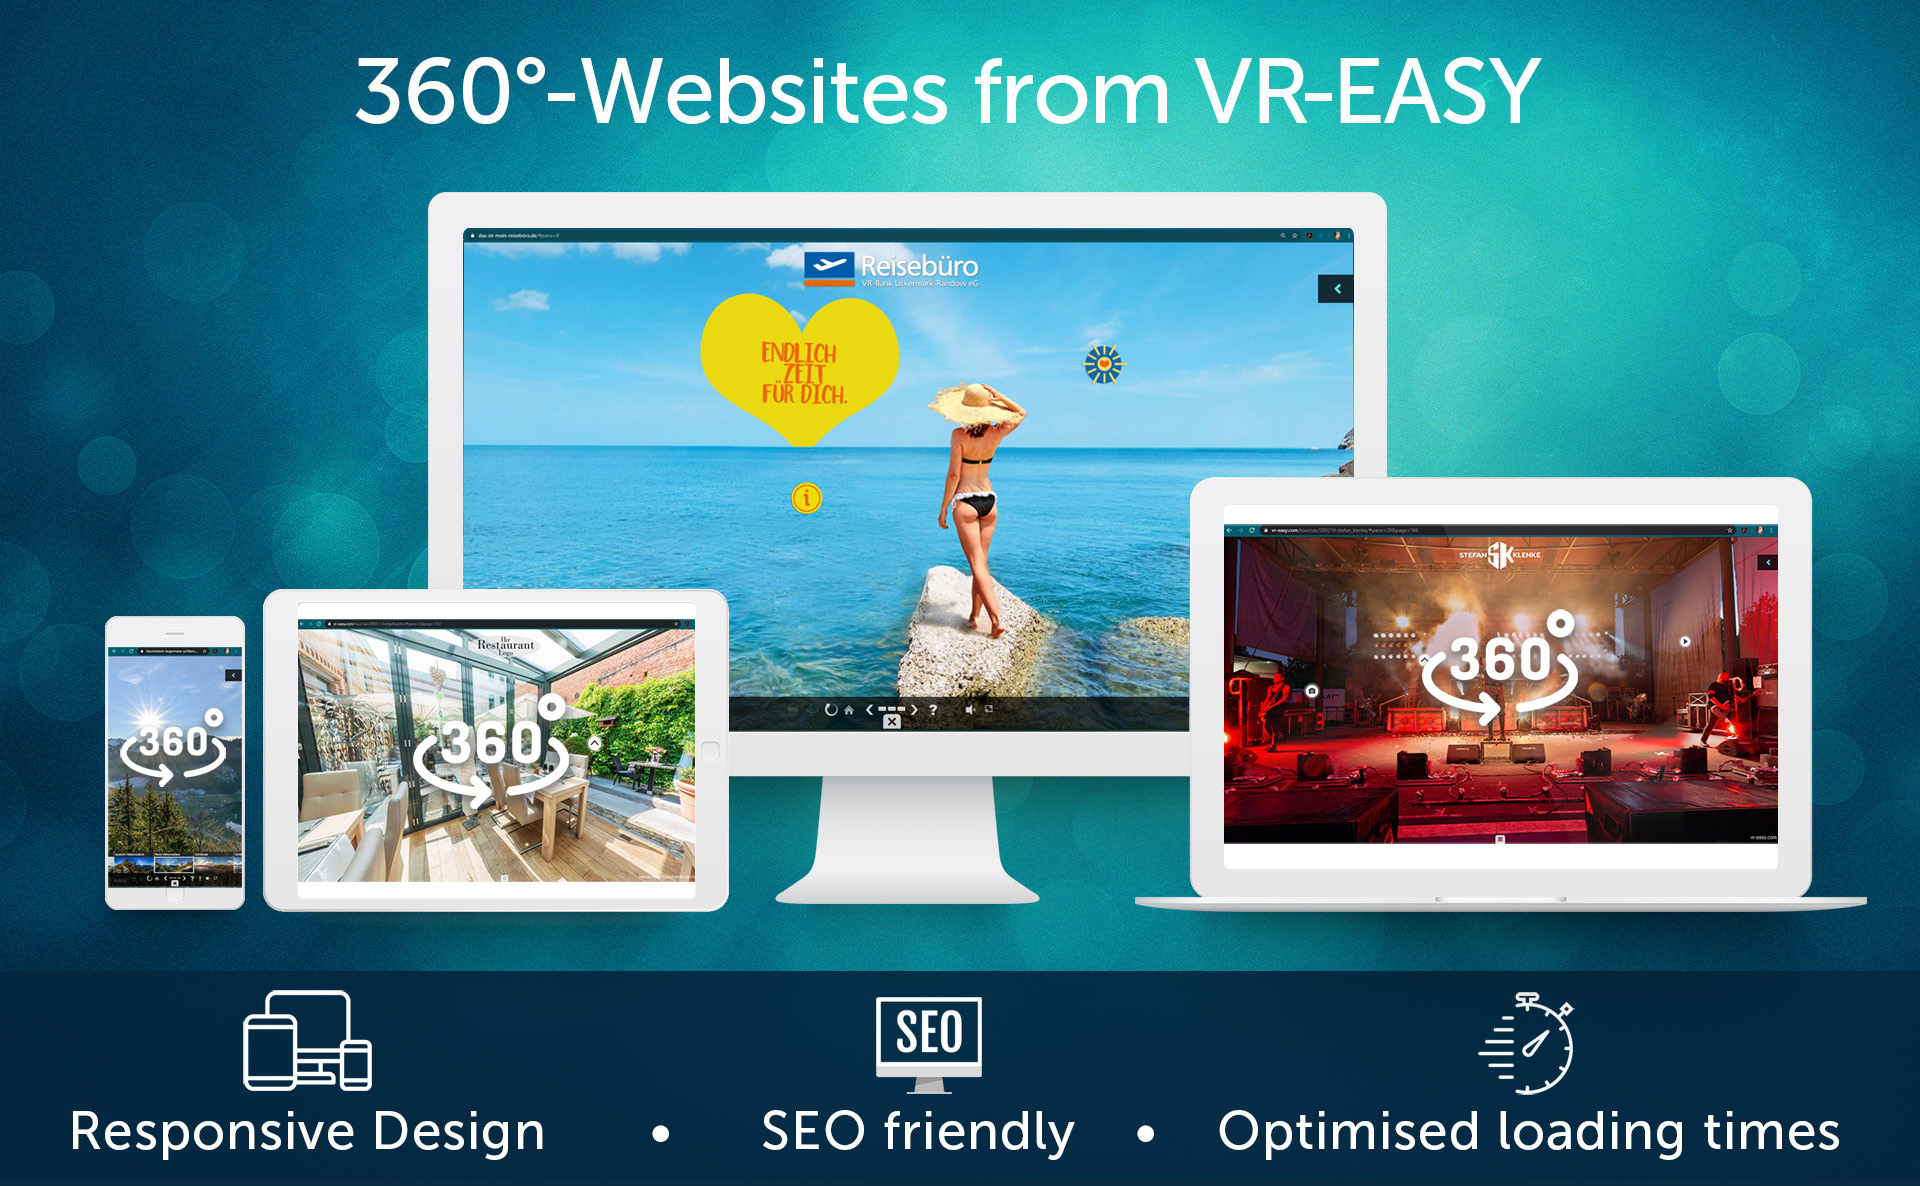 360-websites-from-VR-EASY-responsive-Design-seo-friendly-optimised-loading-times_1920